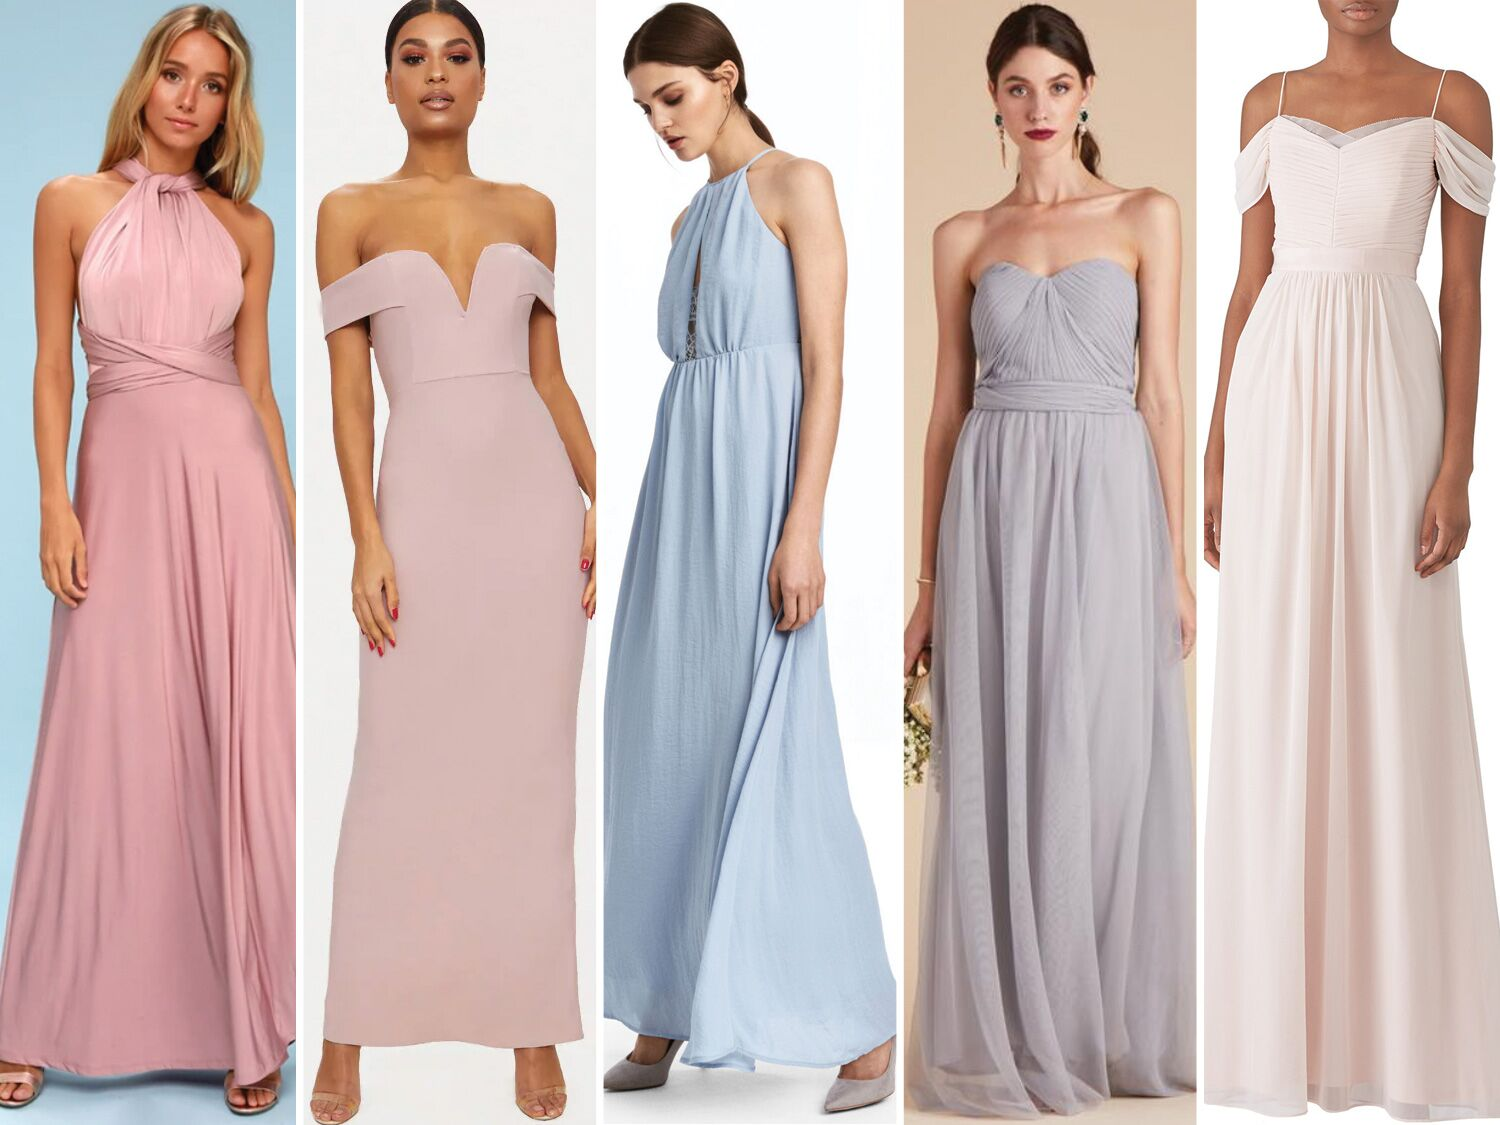 aaf3ed52a8 55 Affordable Bridesmaid Dresses That Don t Look Cheap